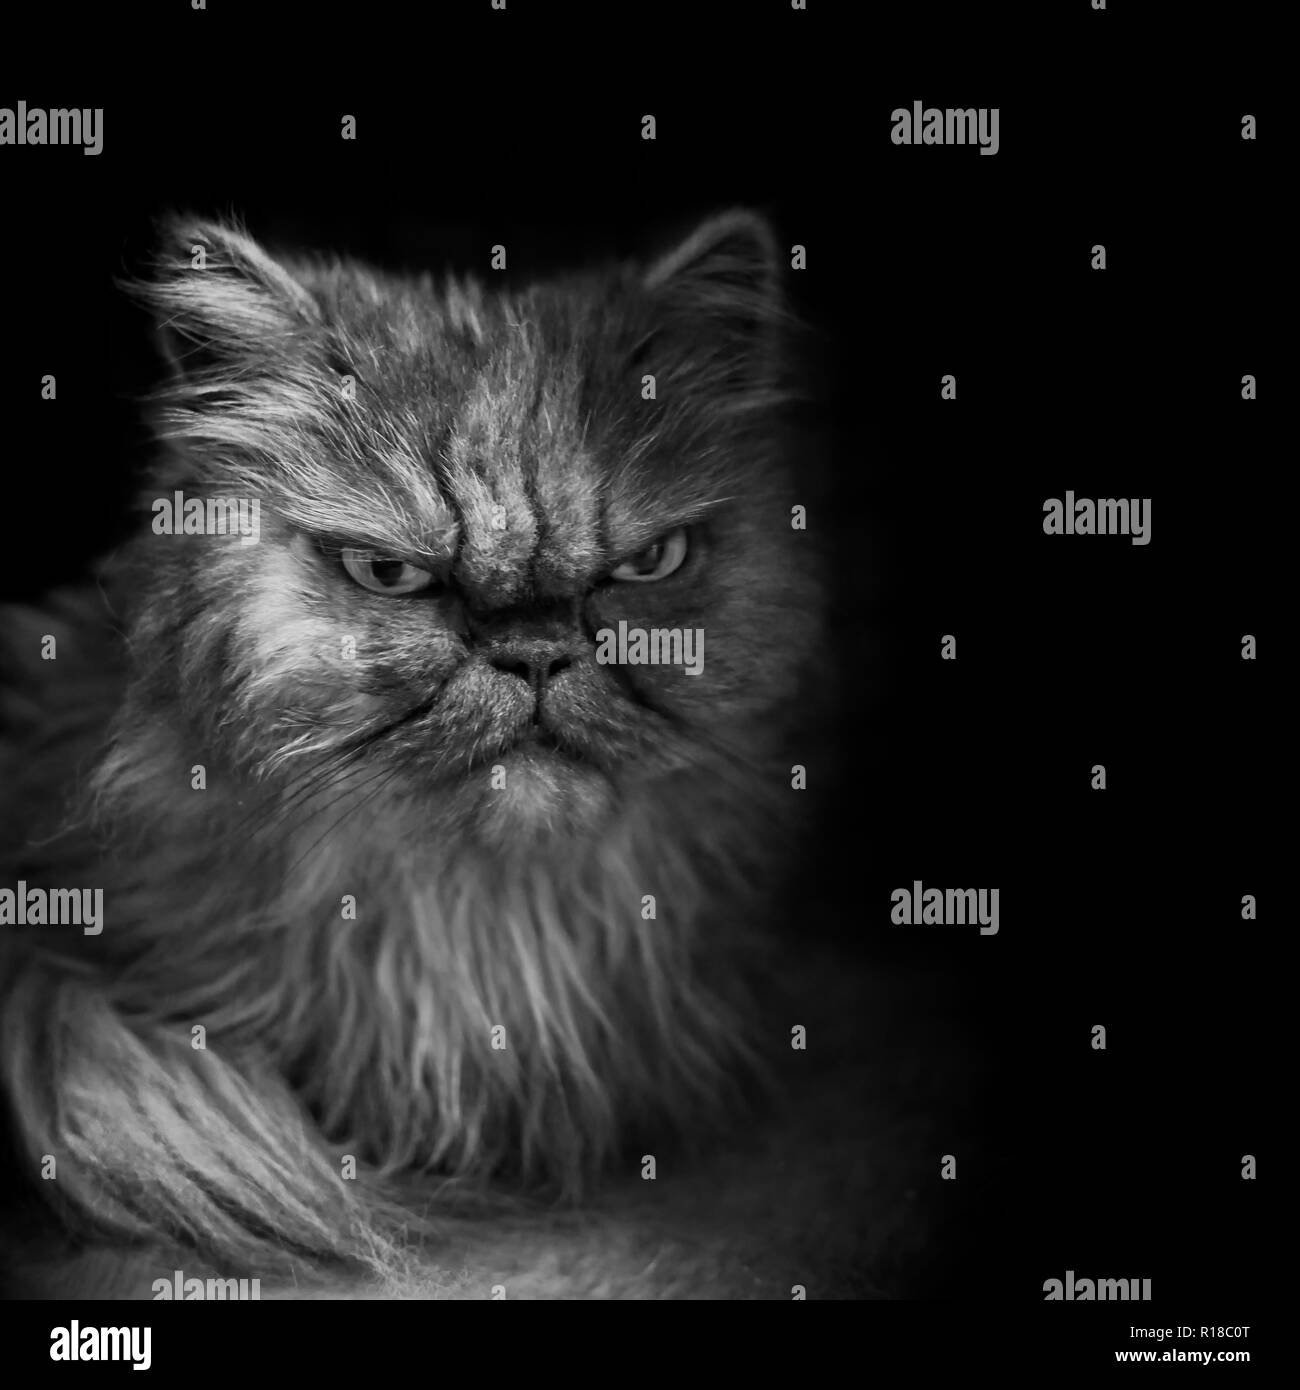 Young persian cat looking angry  - Black and white portrait. - Stock Image